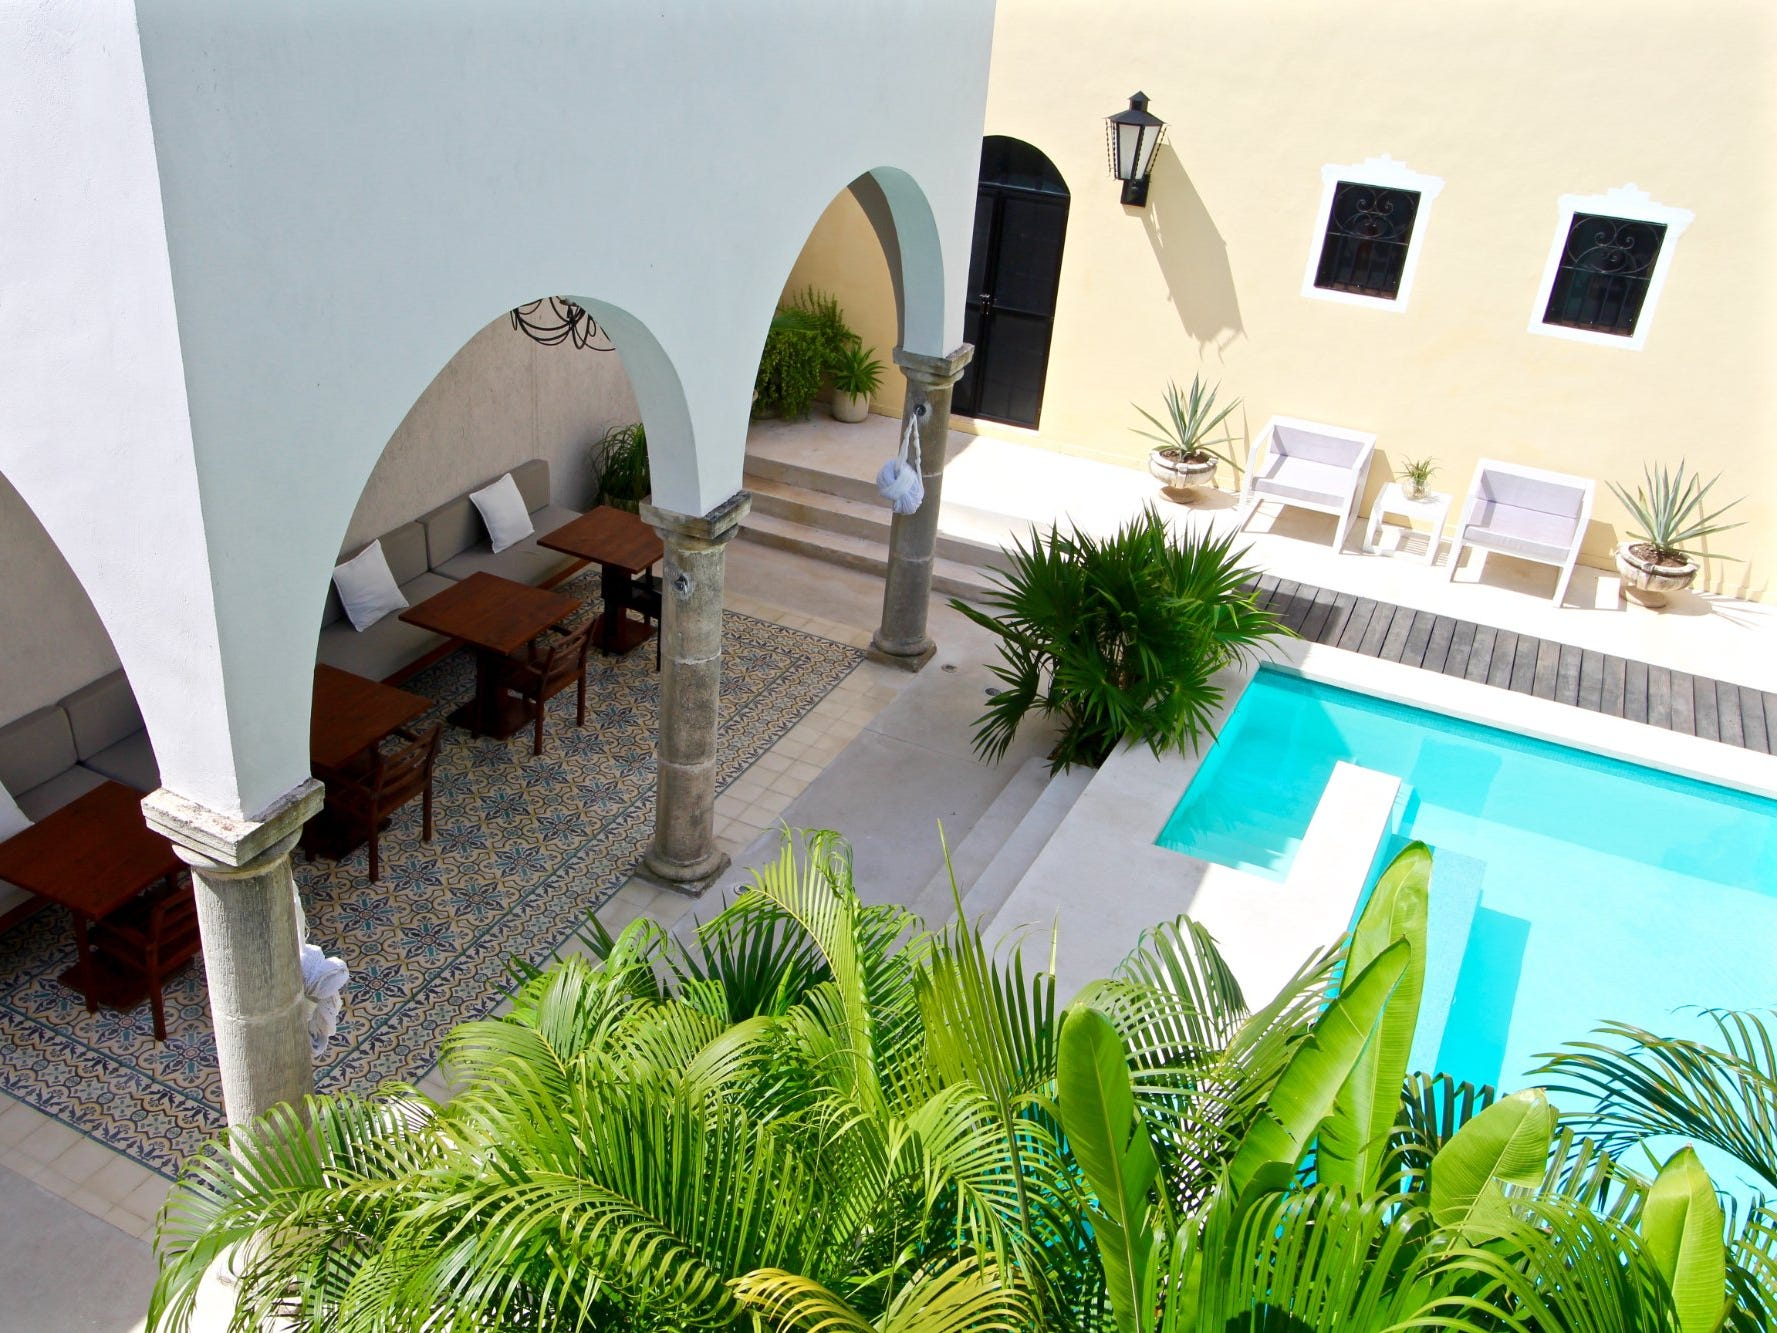 No. 25: The Diplomat Boutique Hotel in Merida, Mexico.